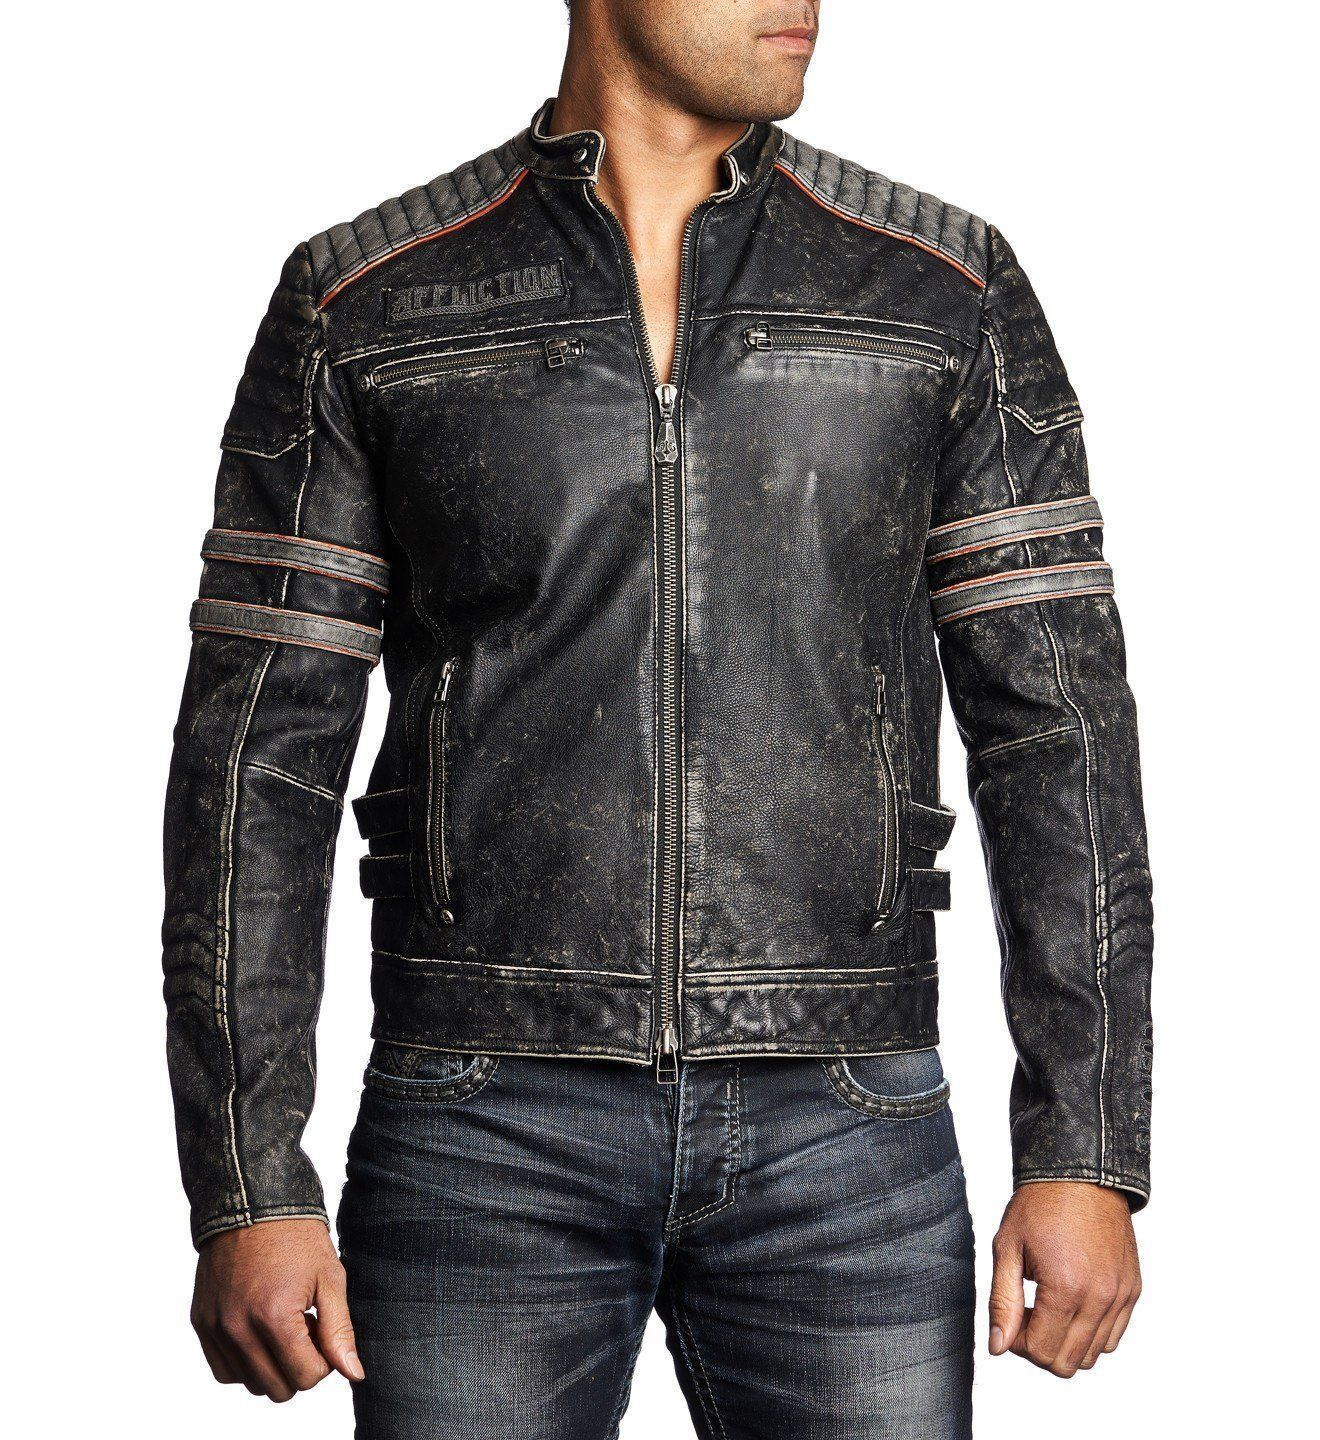 Fast Lane Mens Jackets Affliction Clothing Mens